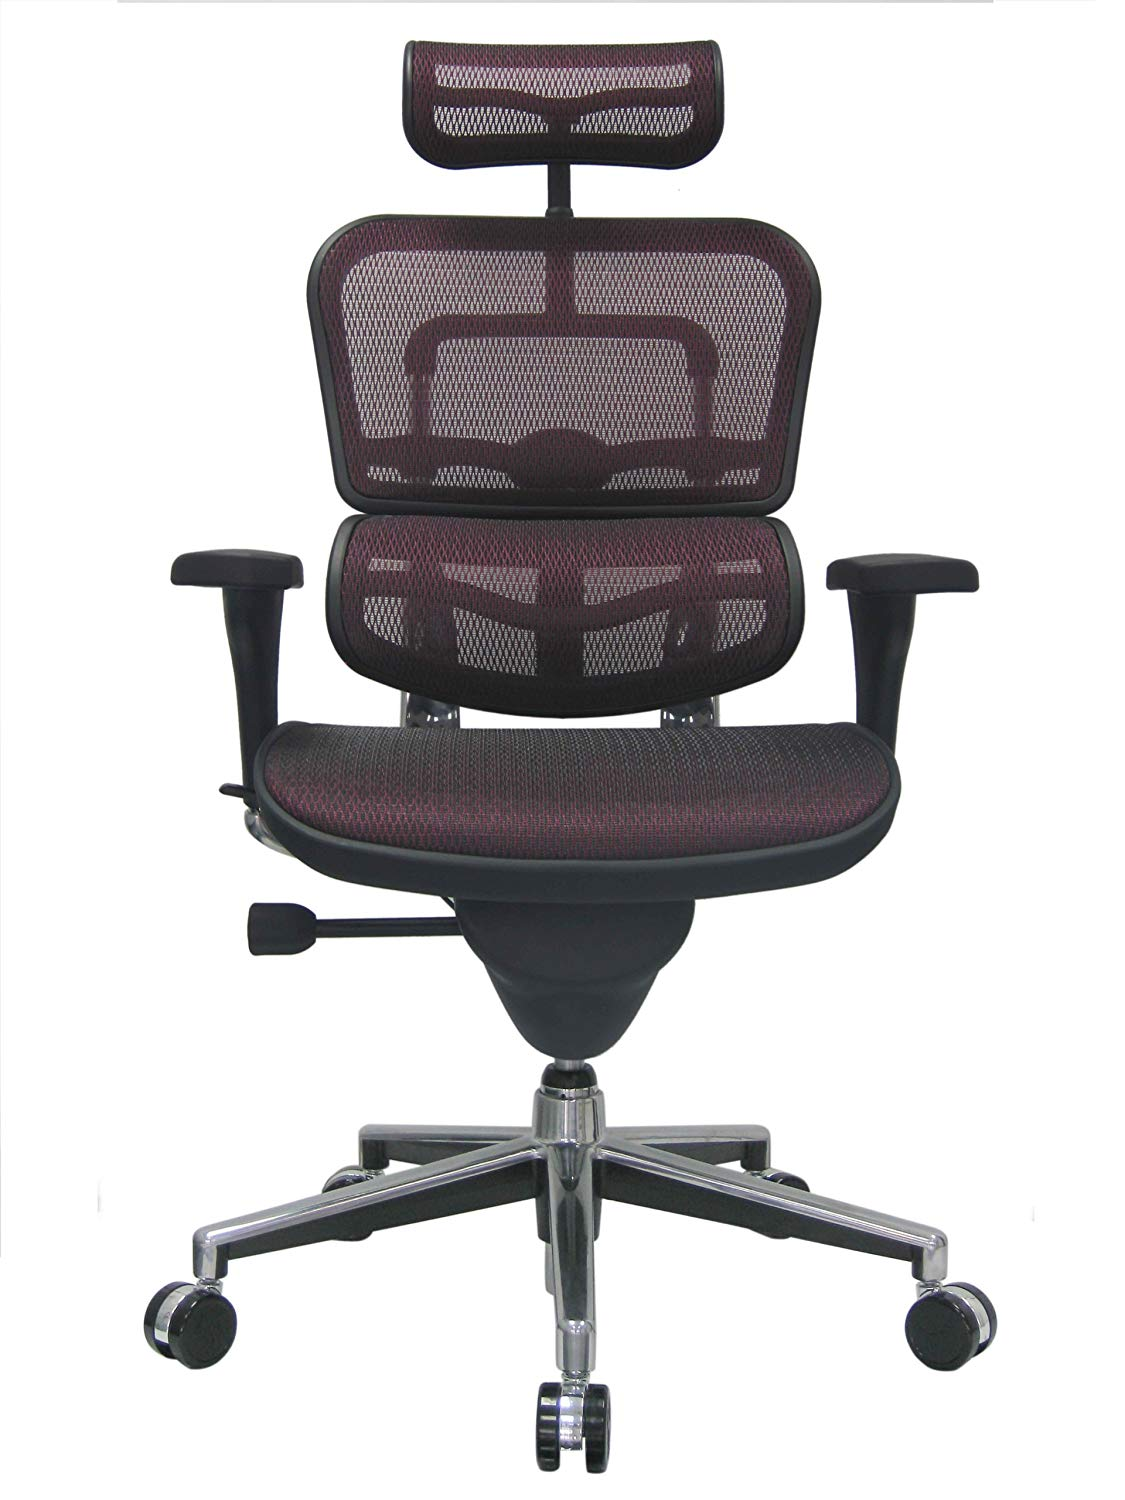 <font color=#833737>ERGOHUMAN HIGH-BACK MESH CHAIR EH-ME7ERG RED</font>